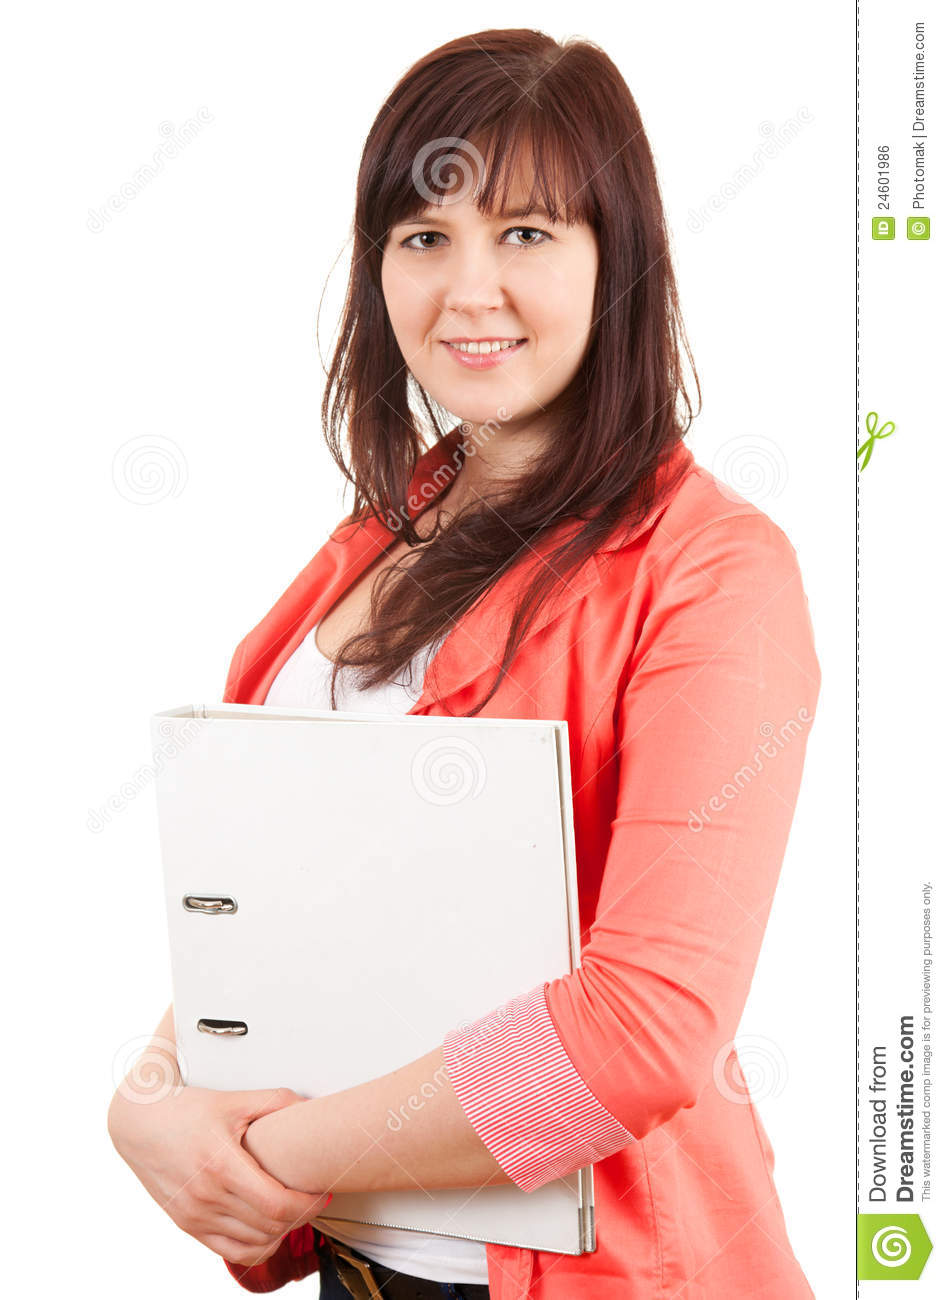 smiling overweight student girl with binder royalty free stock image